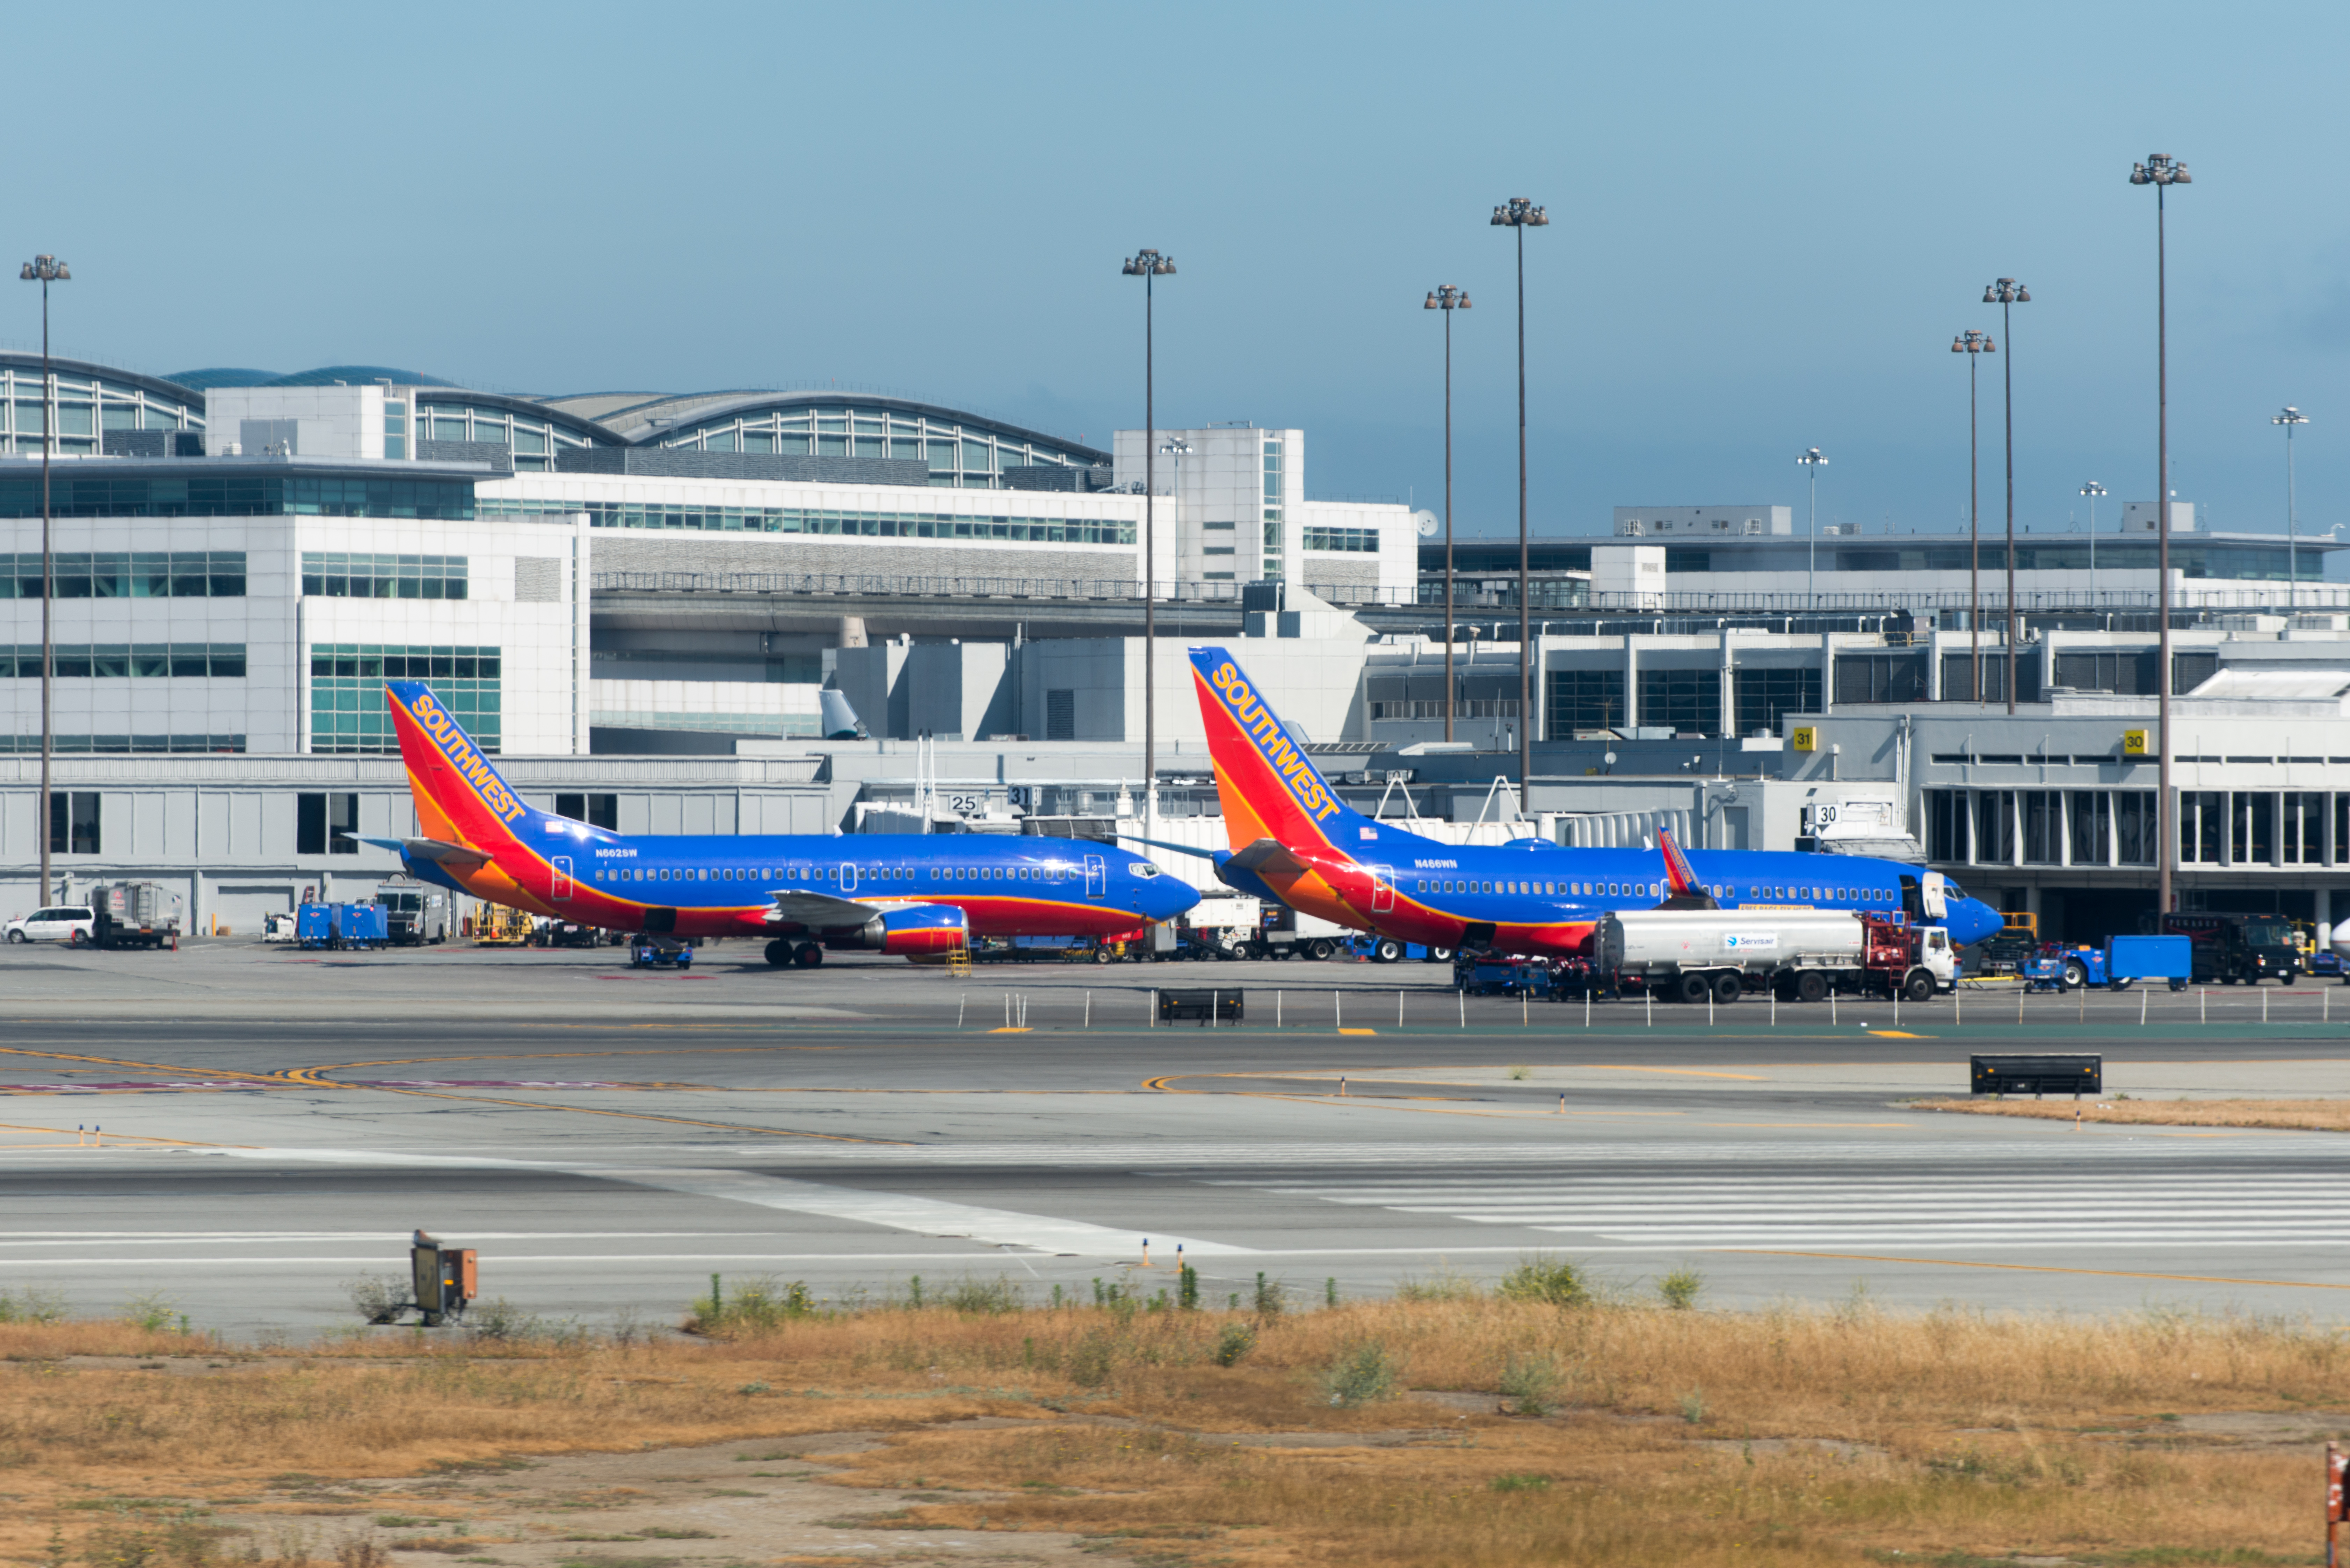 Two southwest airlines planes in front of san francisco international airport (sfo) photo